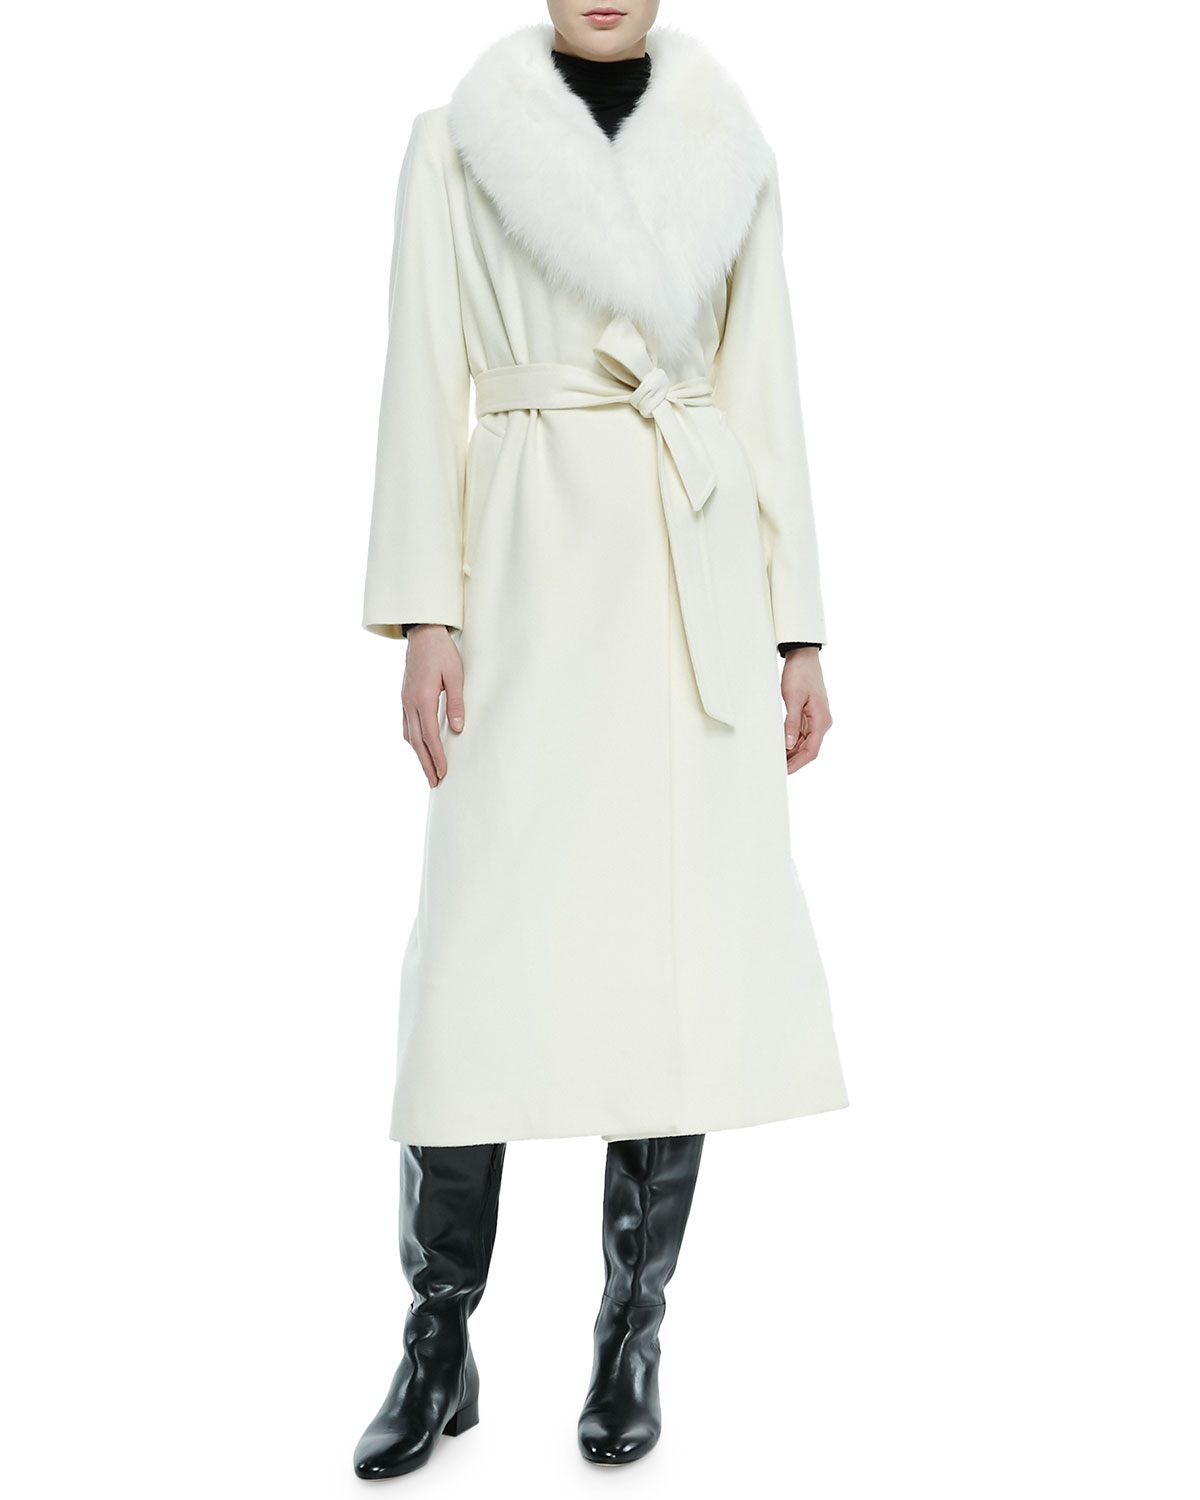 Sofia cashmere Fur-collar Long Wrap Coat in White | Lyst